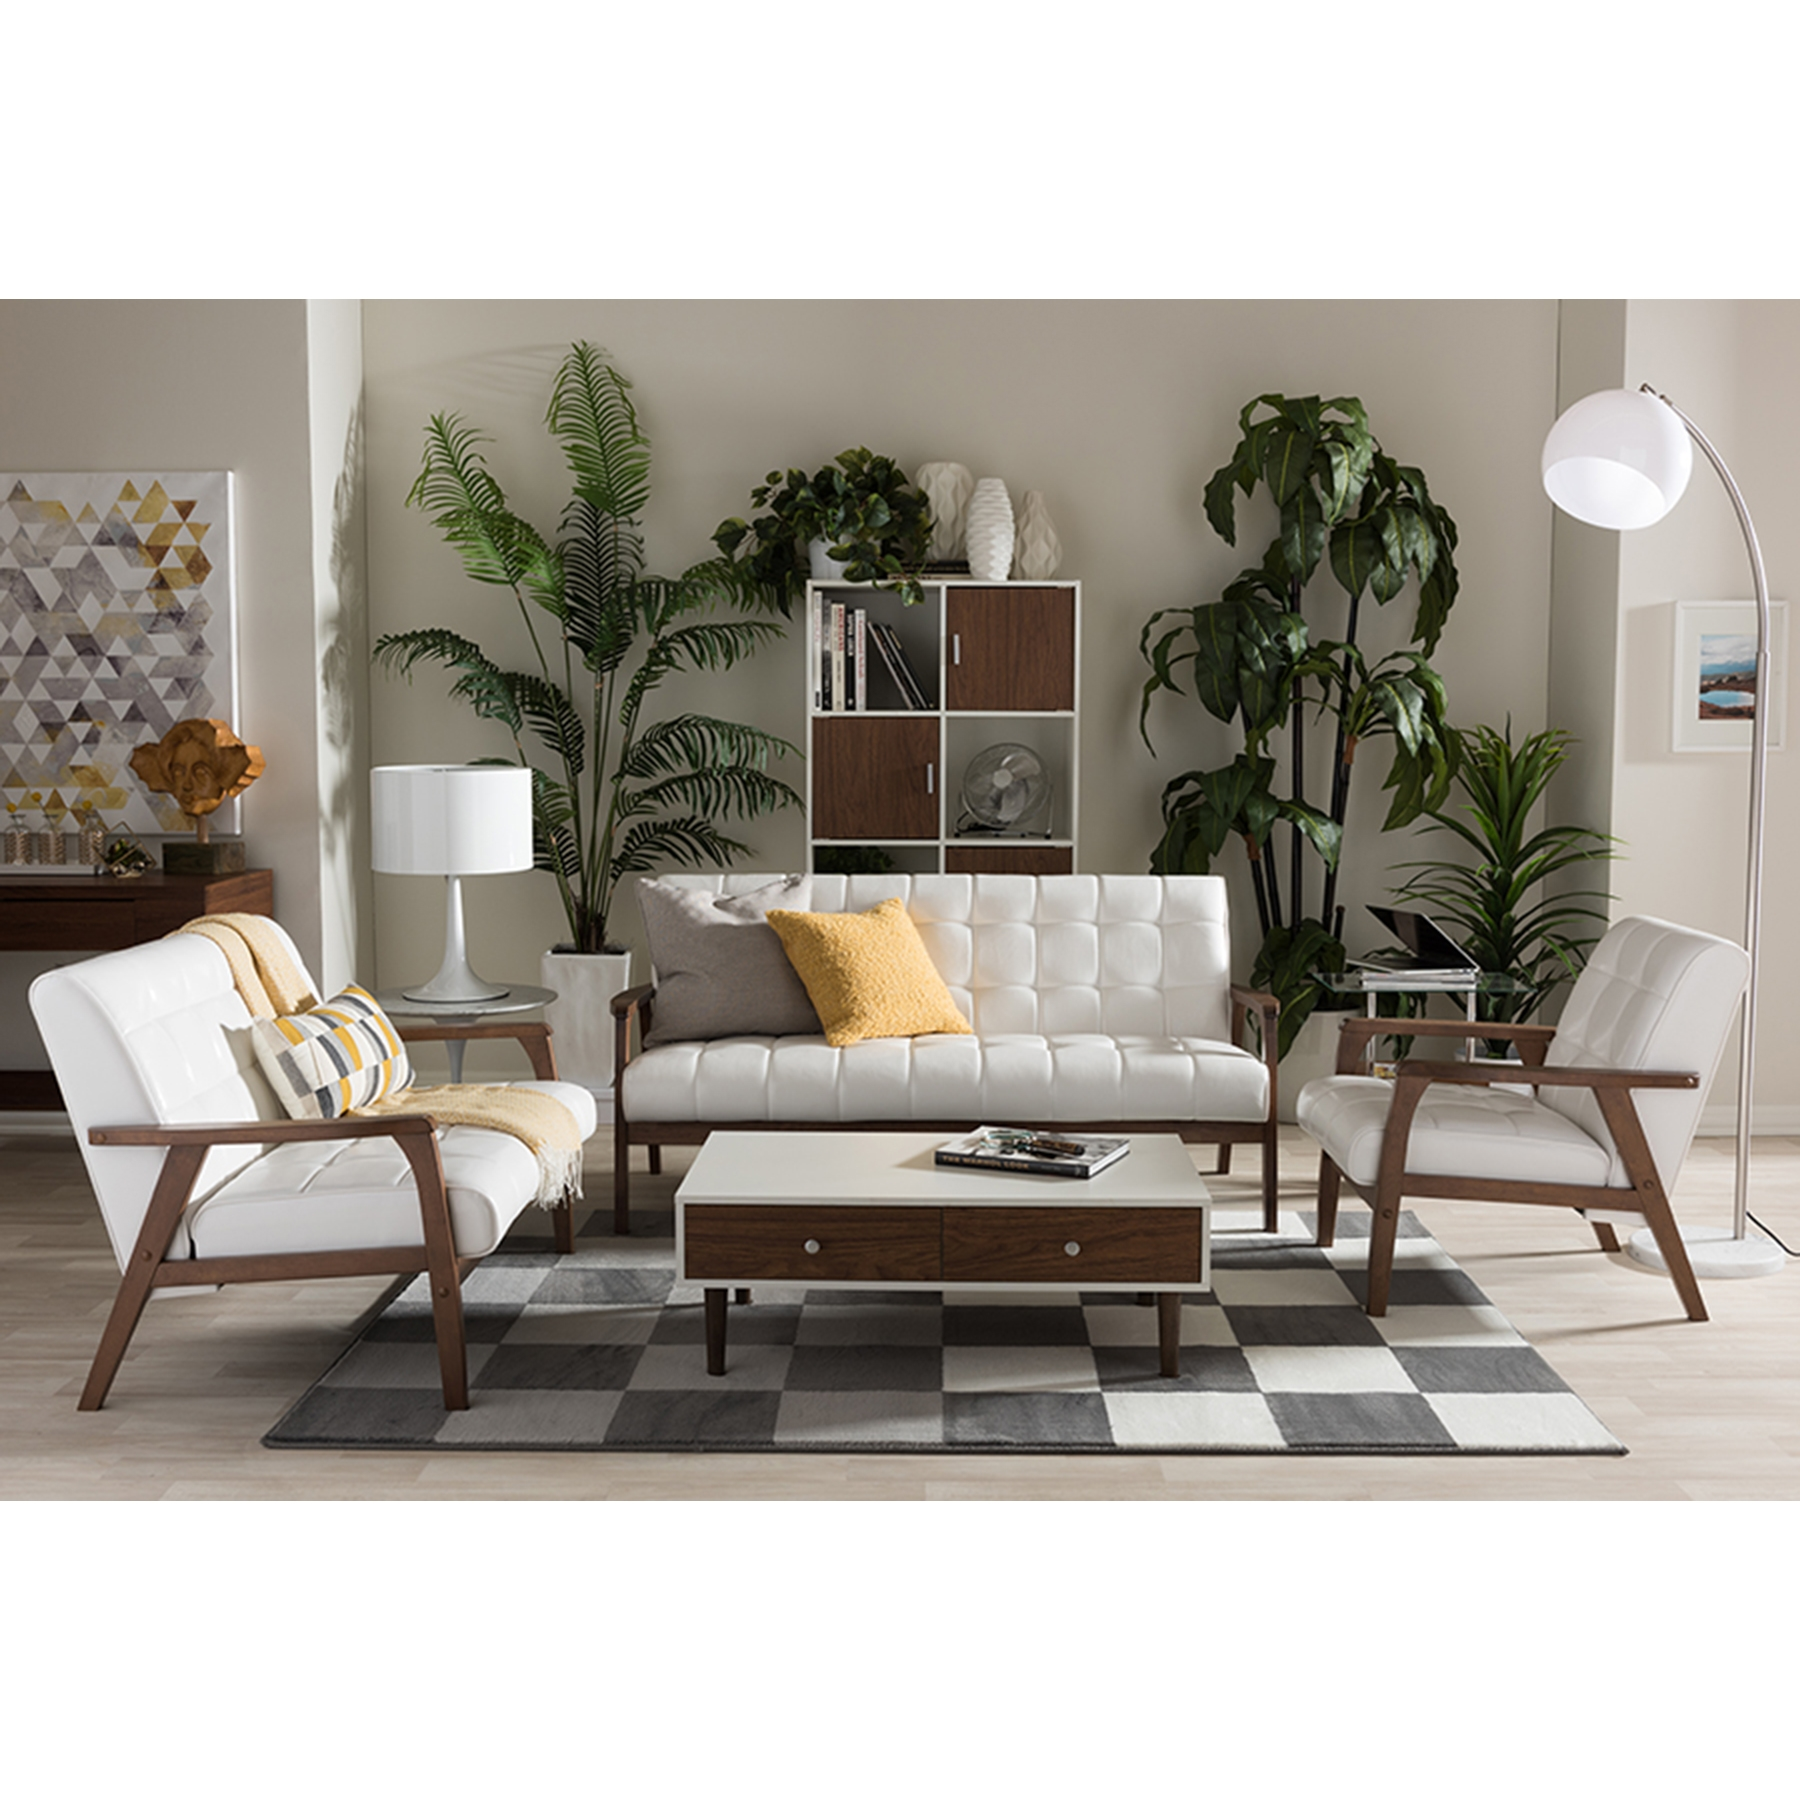 ... Masterpieces 3 Piece Sofa Set   White   WI TOGO 3PC SOFA